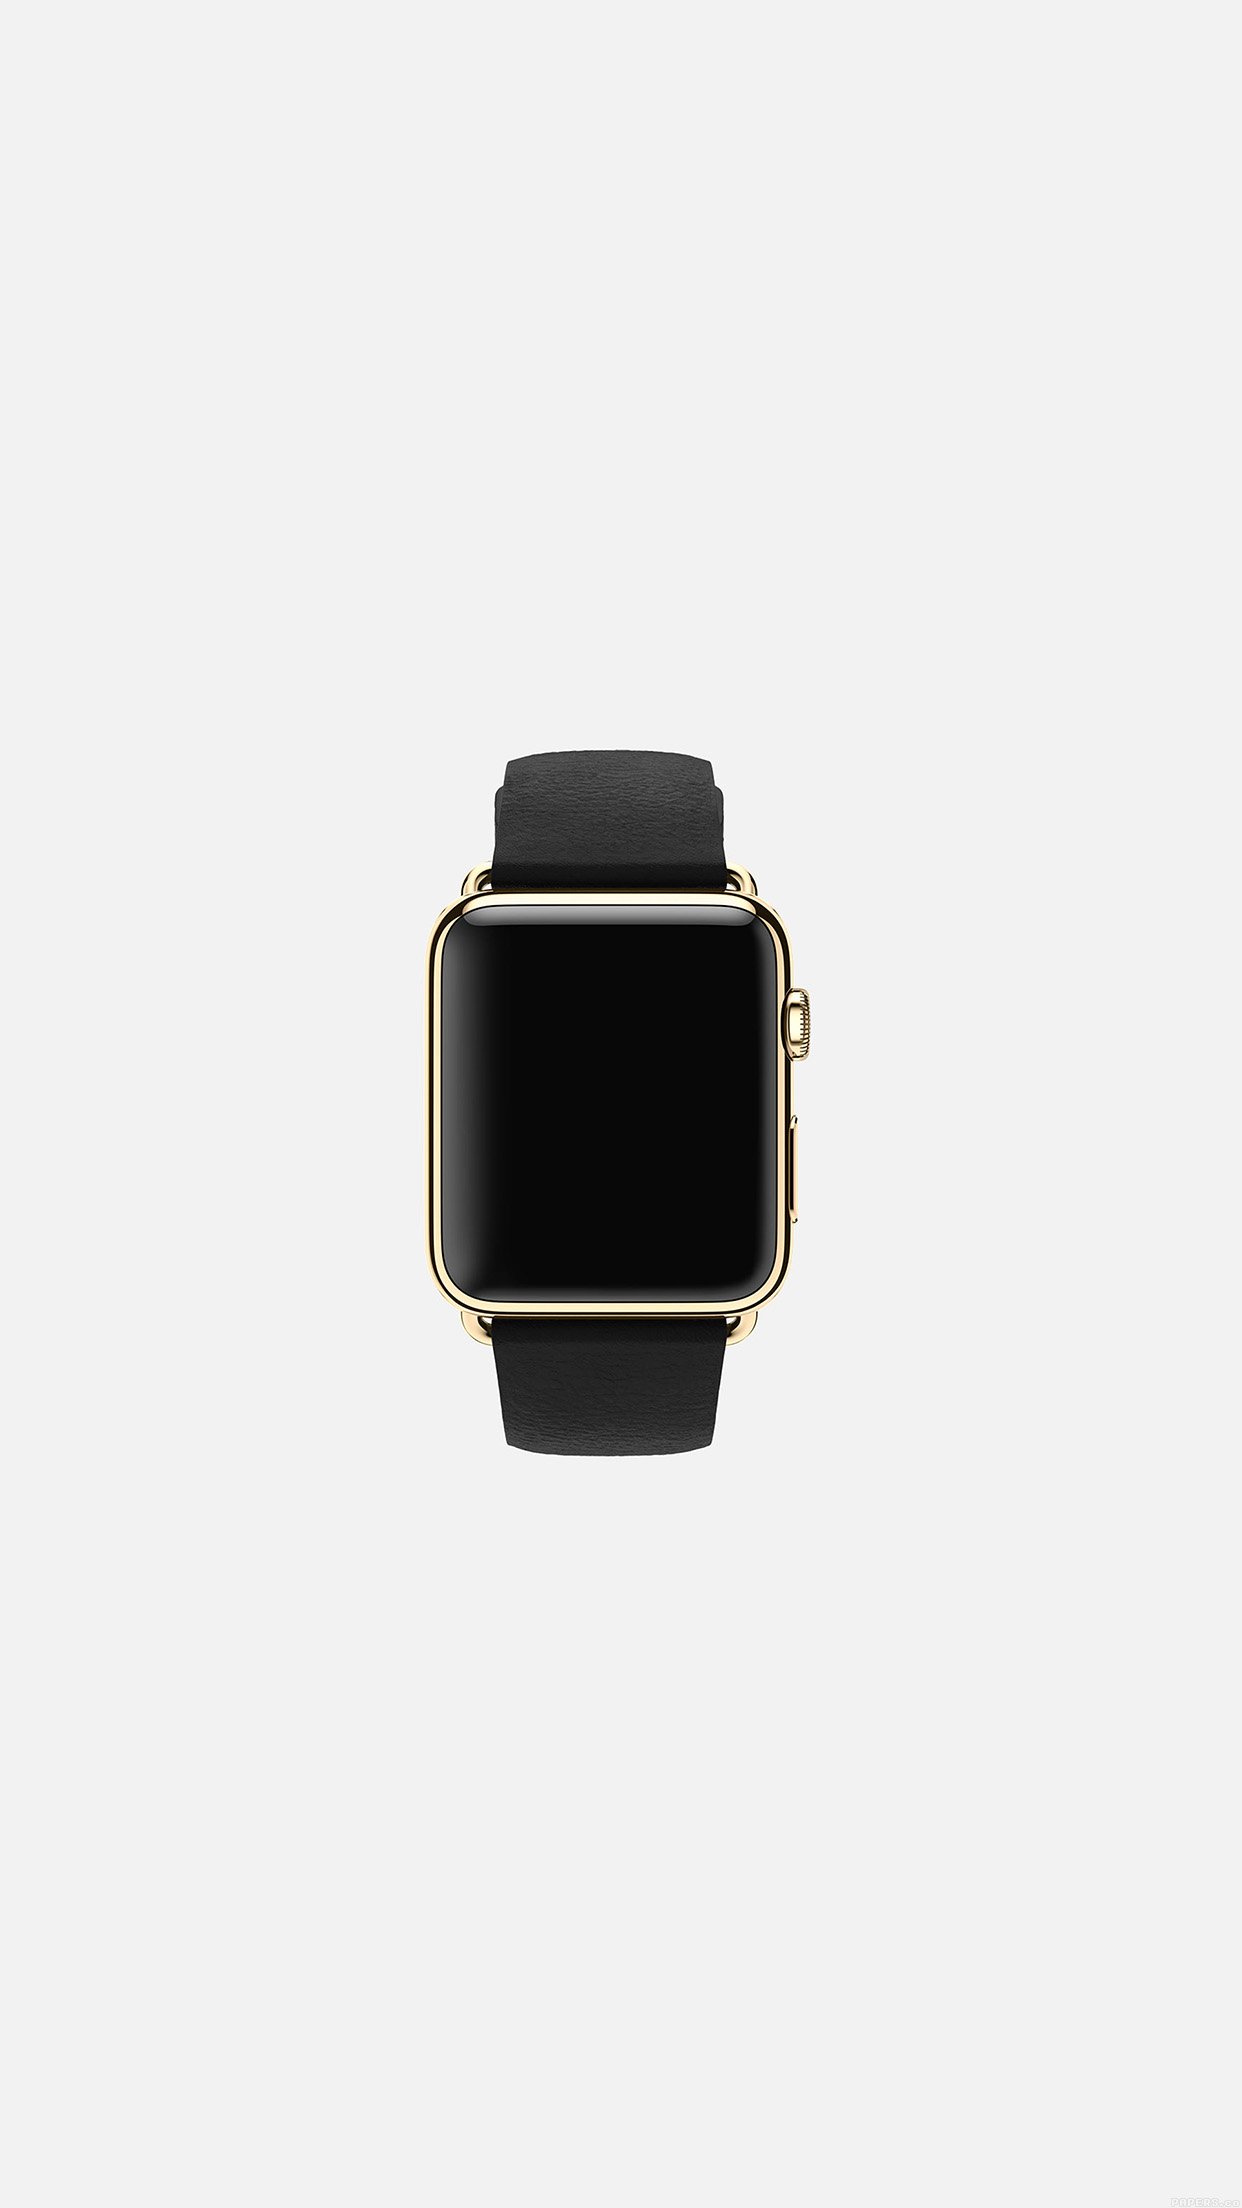 Wallpapers for apple watch hd